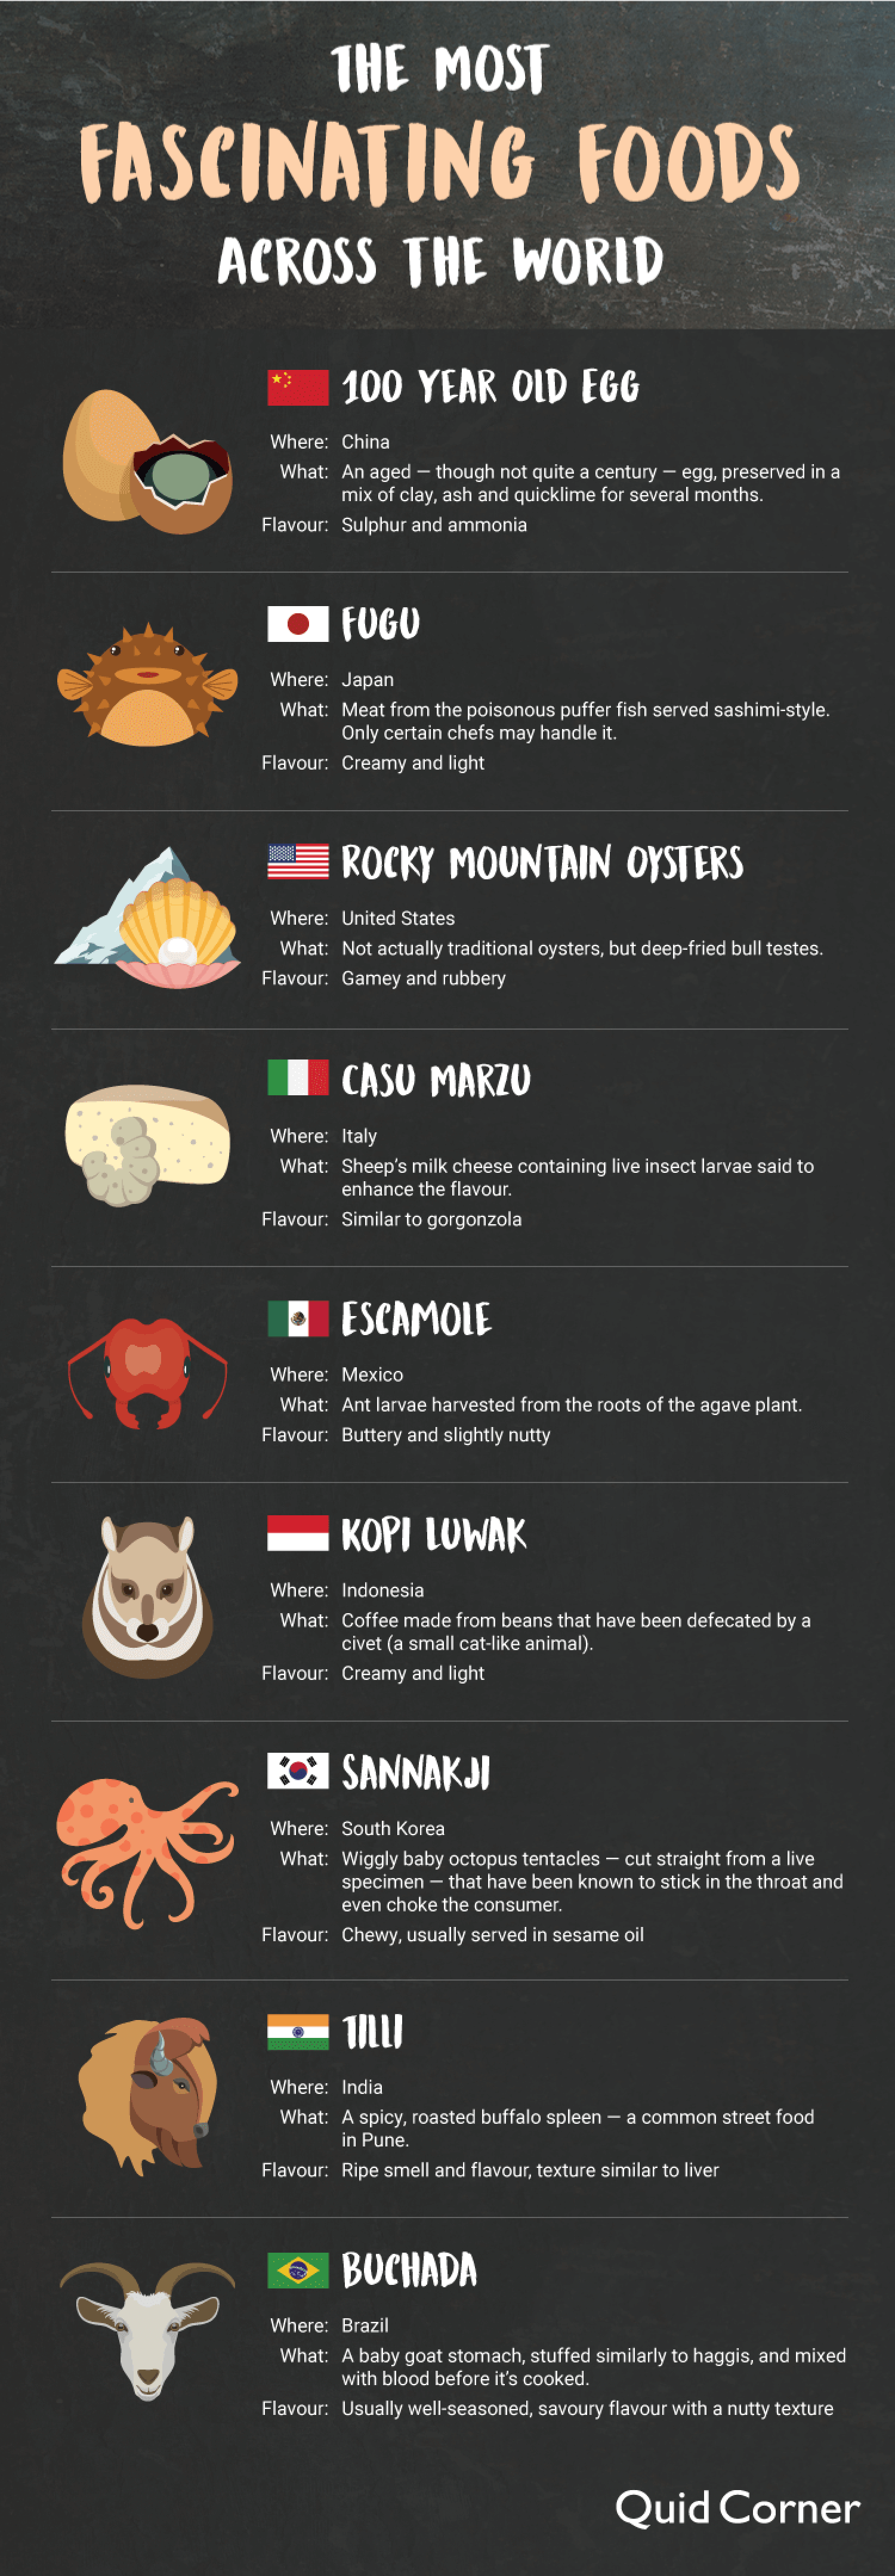 The Most Fascinating Foods Across the World Infographic